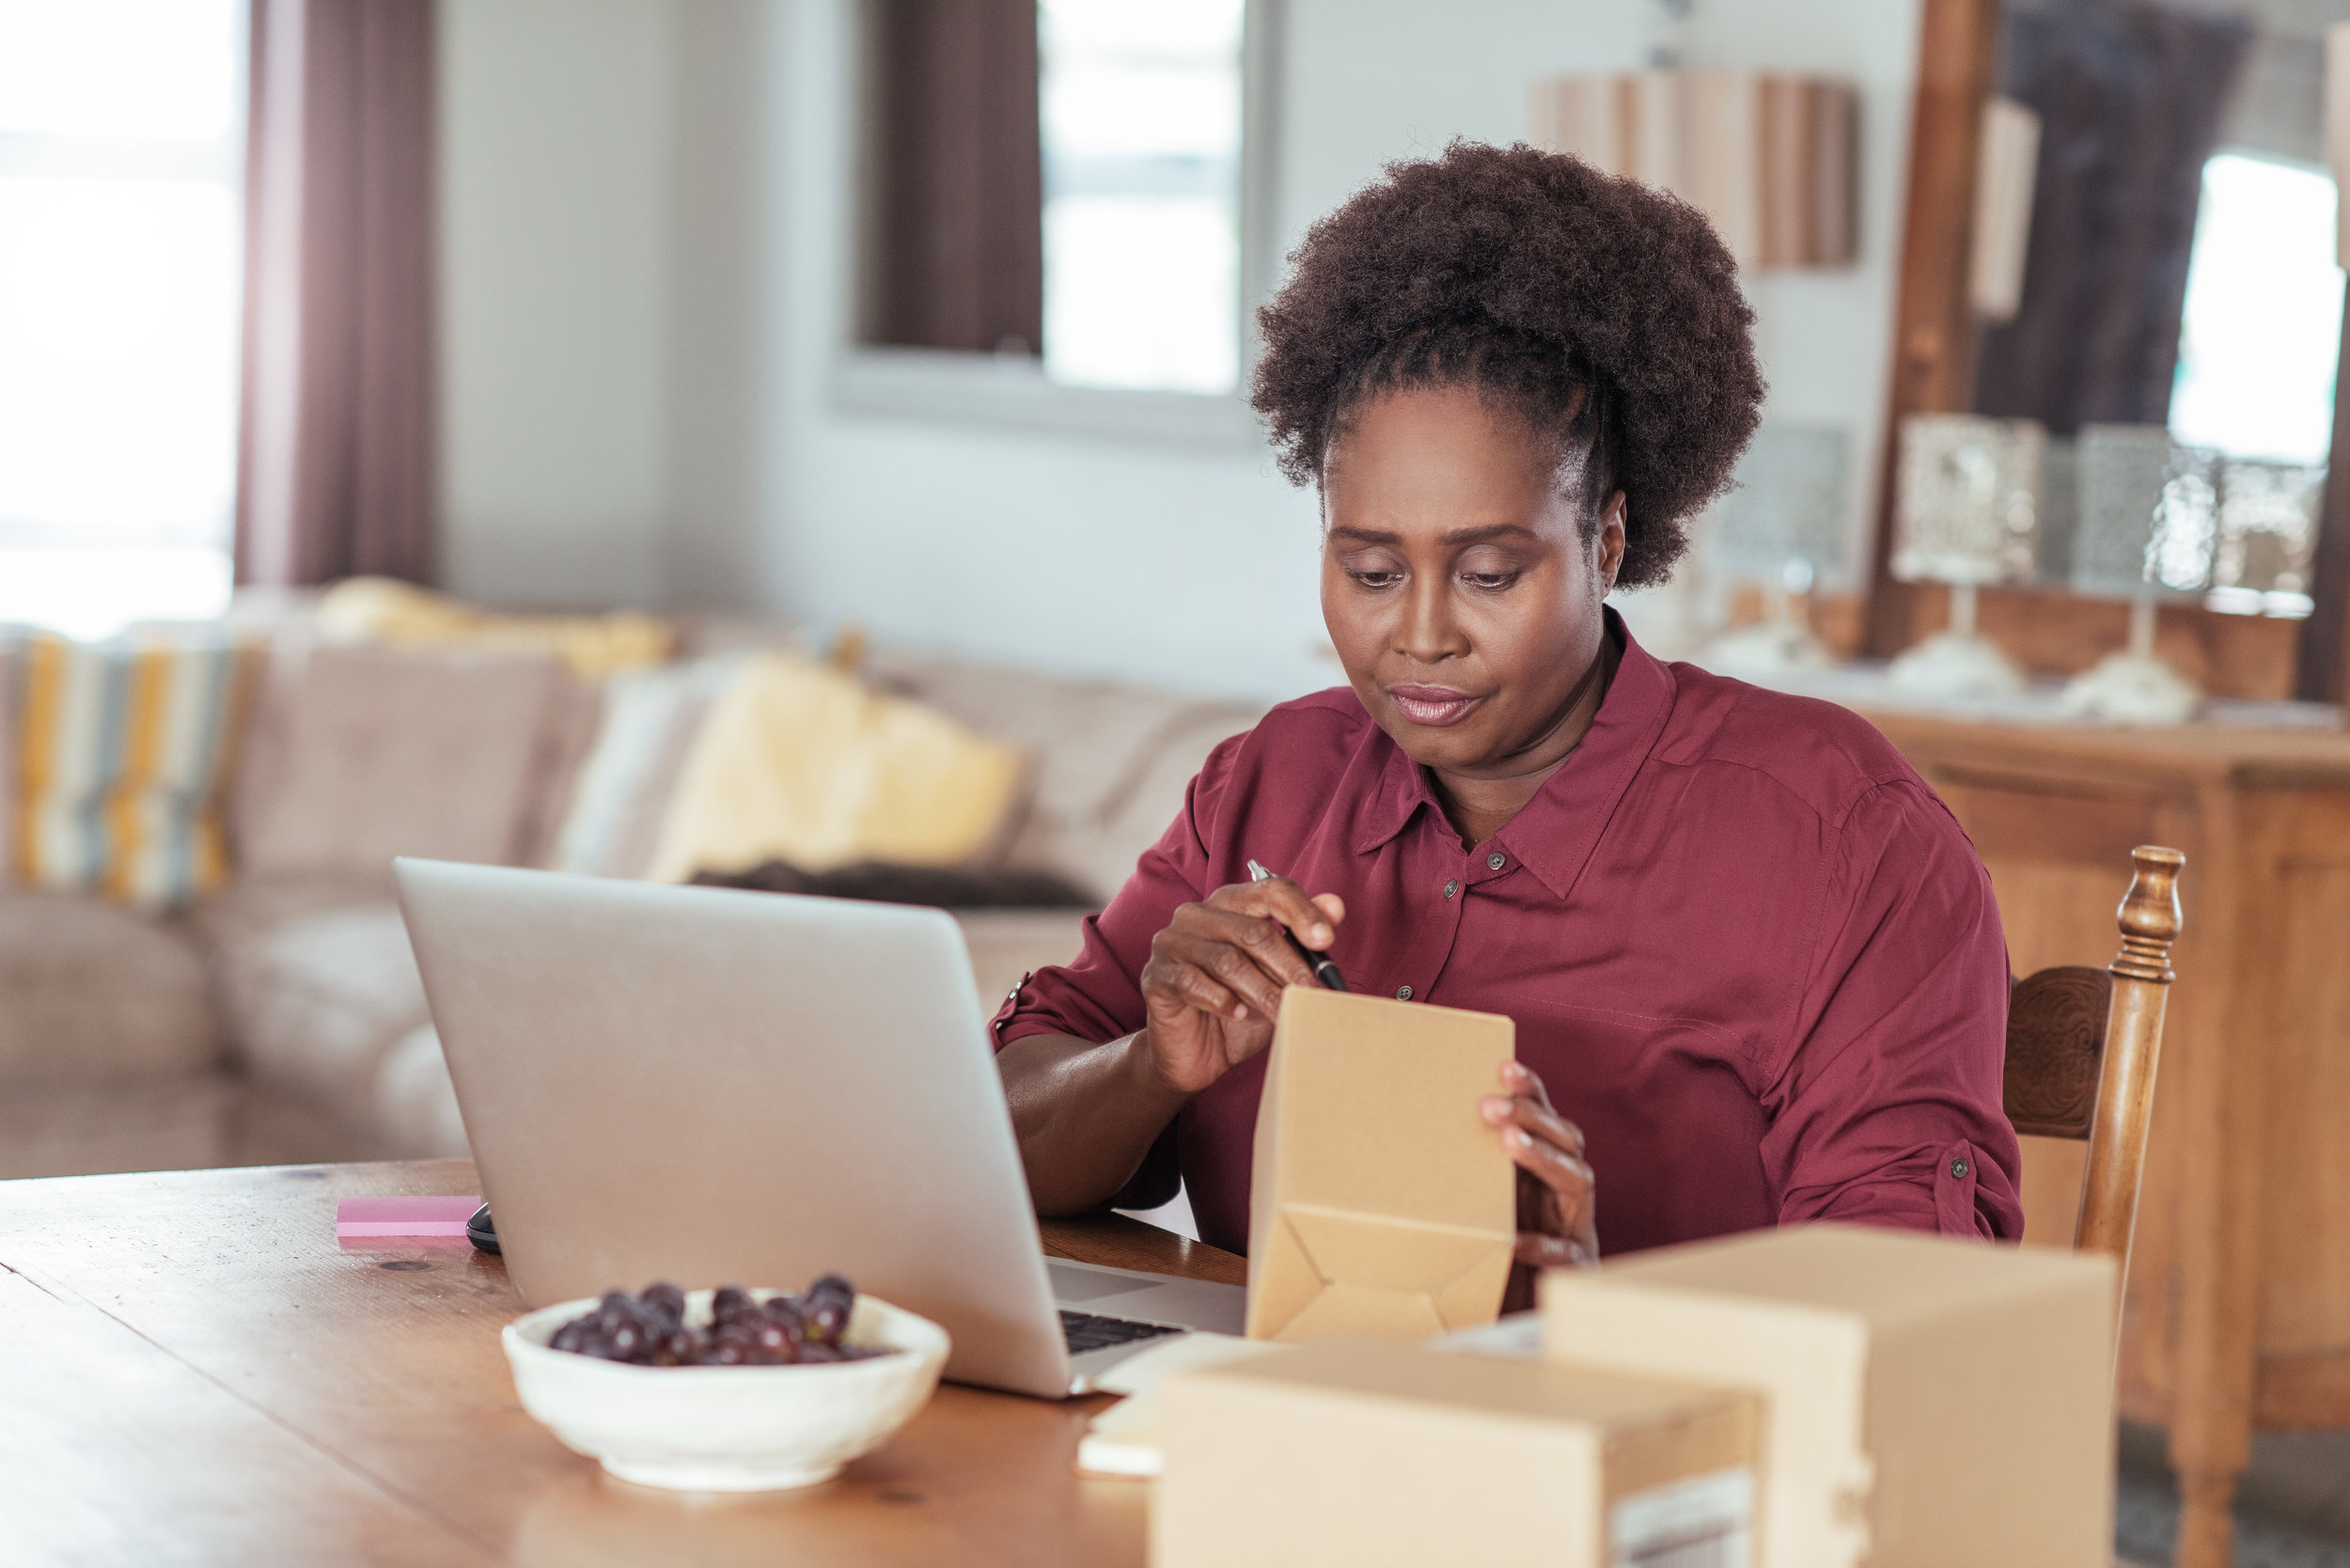 Copy of Young African woman labeling packages while working from home